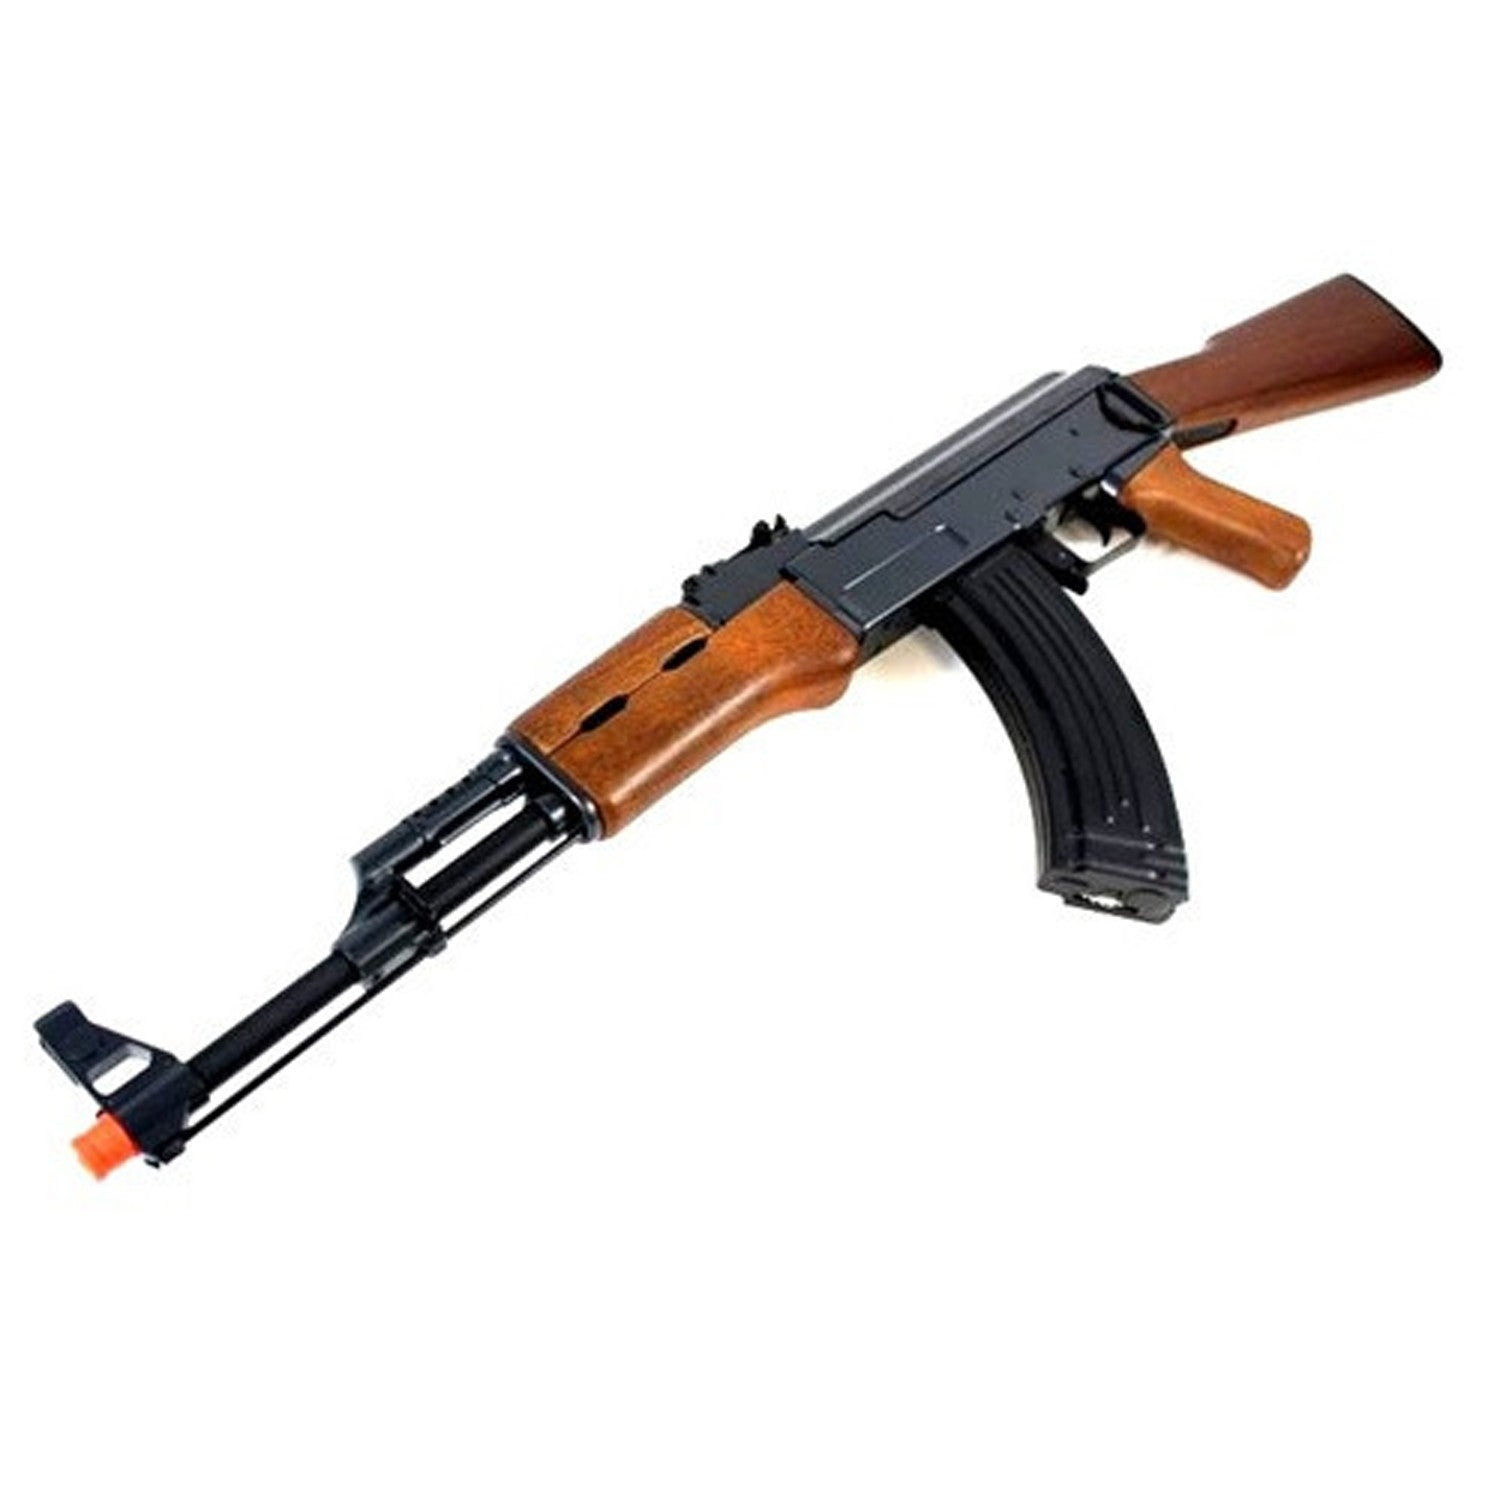 CYMA CM028 Metal Gearbox AK 47 Airsoft AEG CYMA AK-47 - automatic electric rifle, newest version, Ver. 3 metal gearbox, high quality ABS body, 330-360 fps, high accuracy & performance